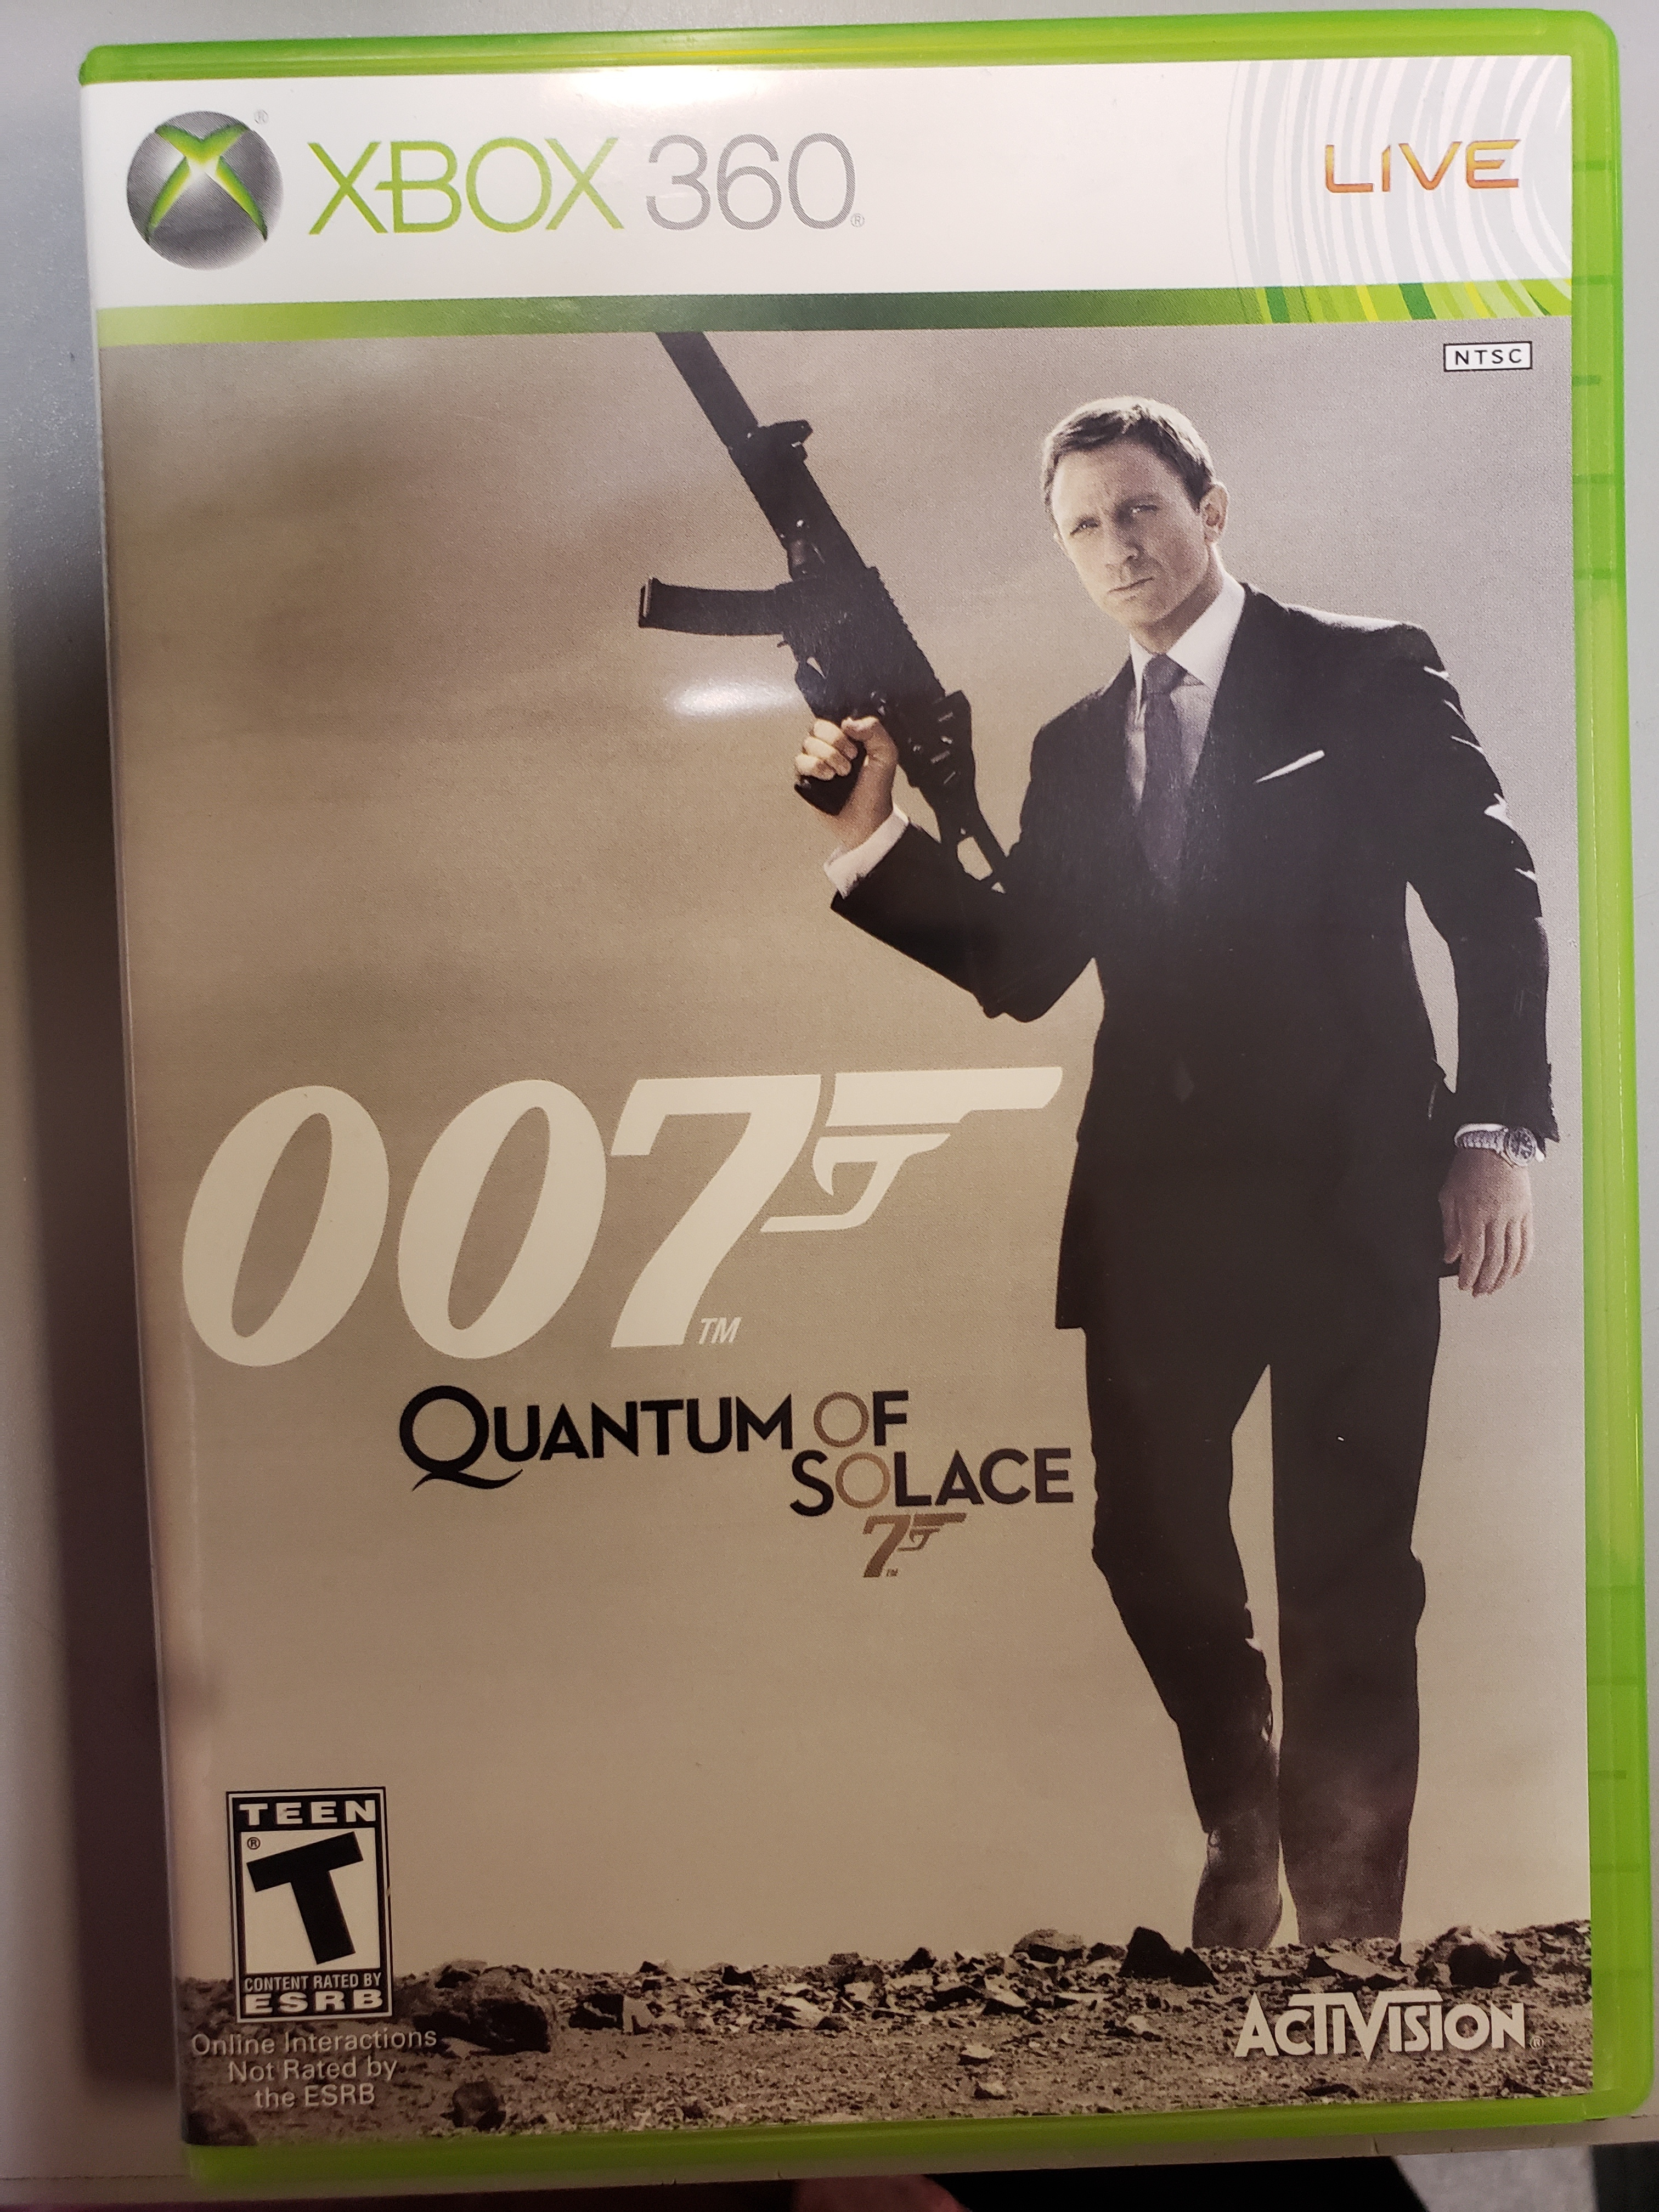 007 QUANTUM OF SOLACE - XBOX 360 GAME